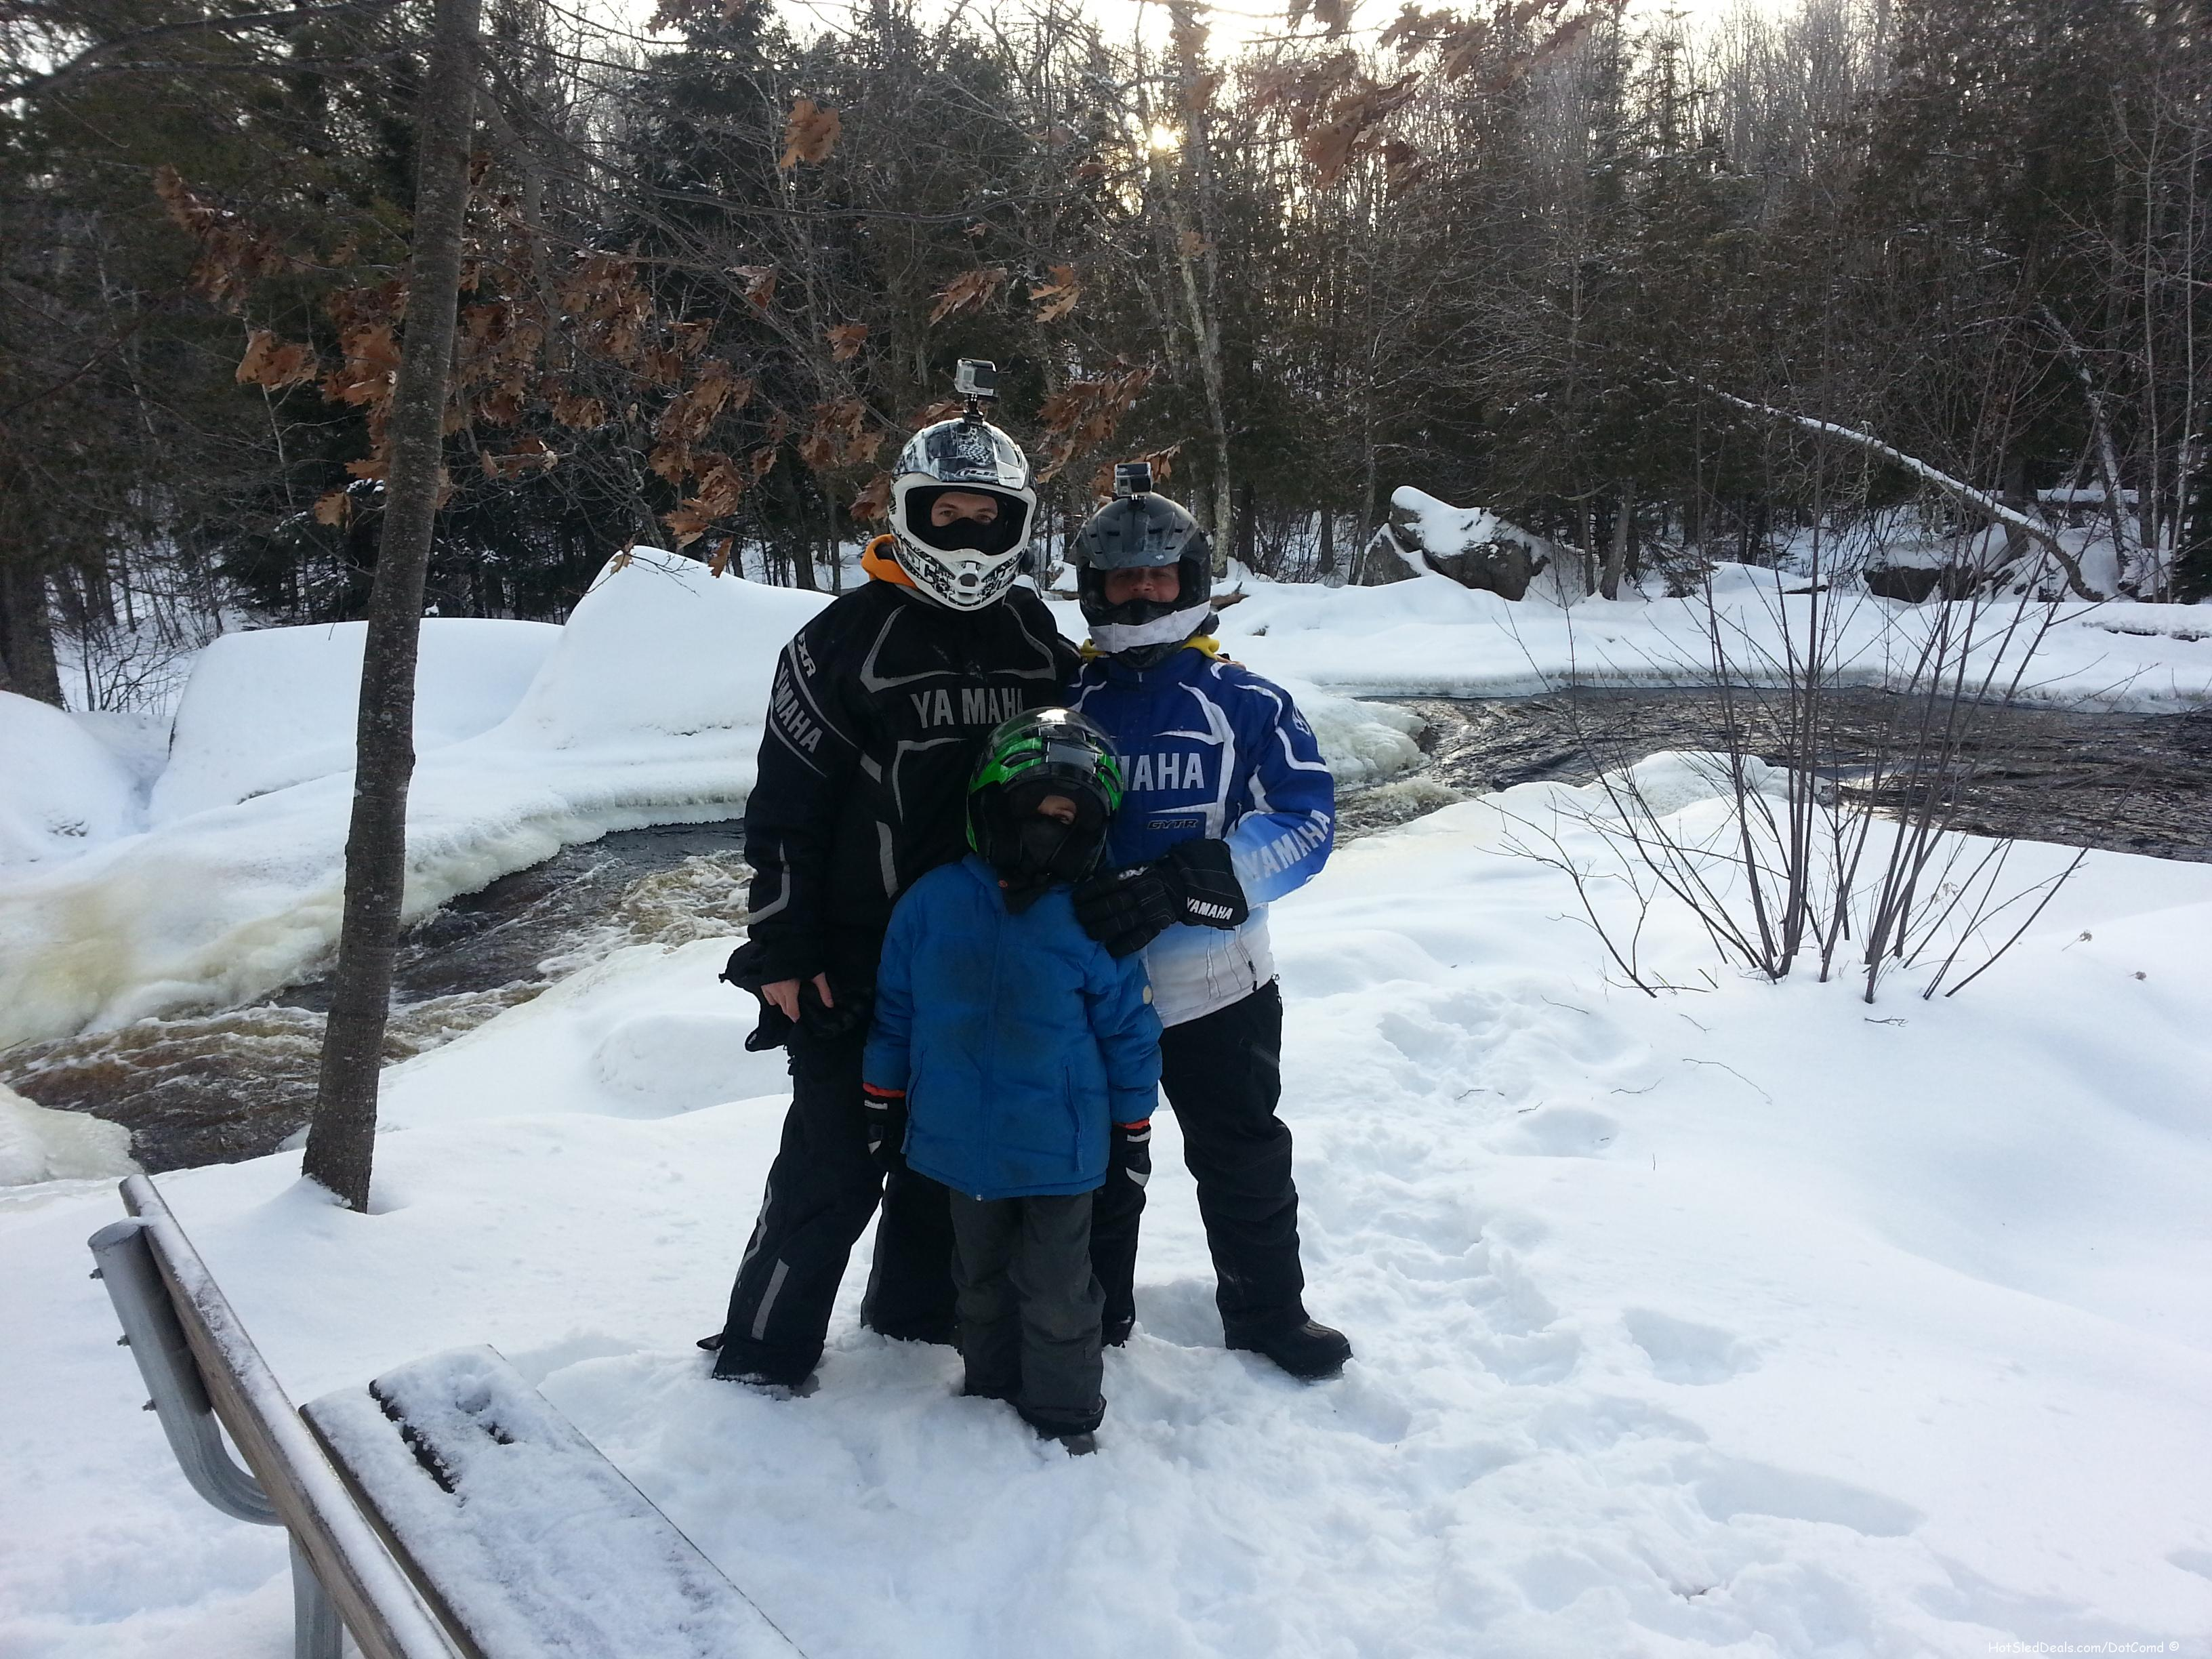 My son Blake Cruzer had his first ever snowmobiling trip this weekend with the boys...    A mans trip if you know what I mean!   LOL.   It was a blast!  140 miles out in the middle of nowhere till about 7:30 at night.   We took in some sights at a waterfall, and then slept for about 11 hours.